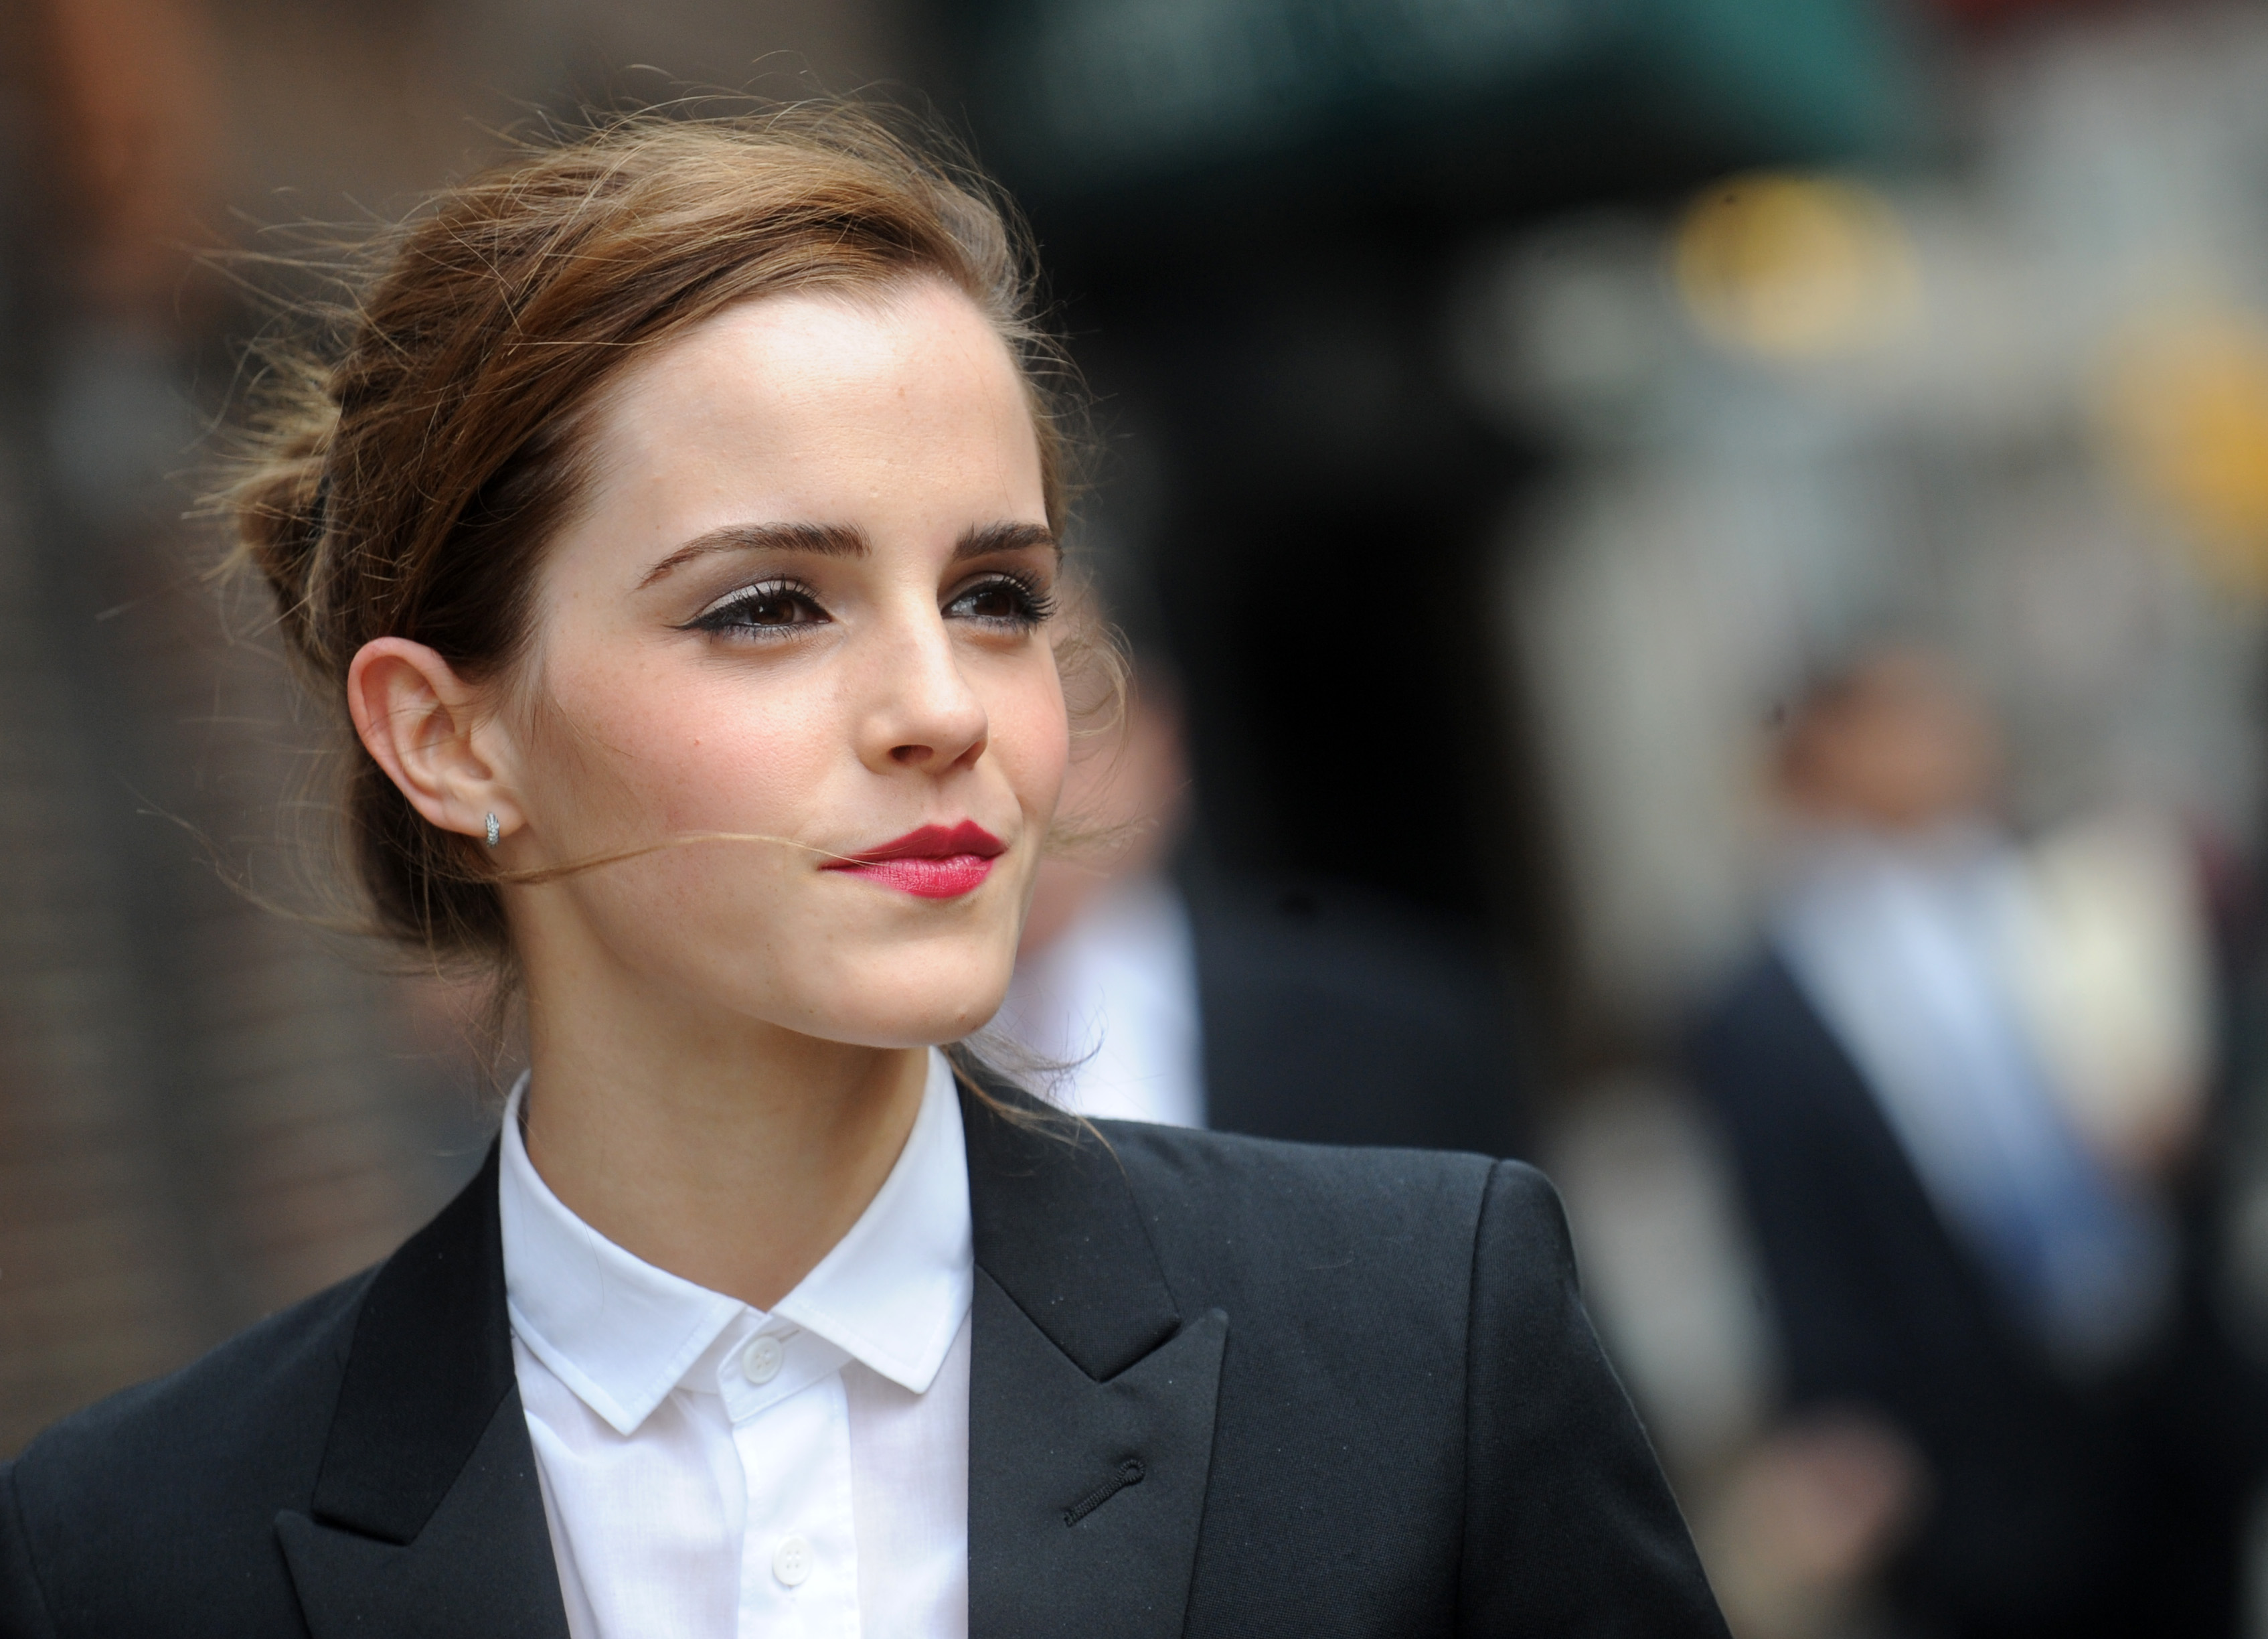 Emma Watson made an *incredible* short film about gender equality, and she's our hero